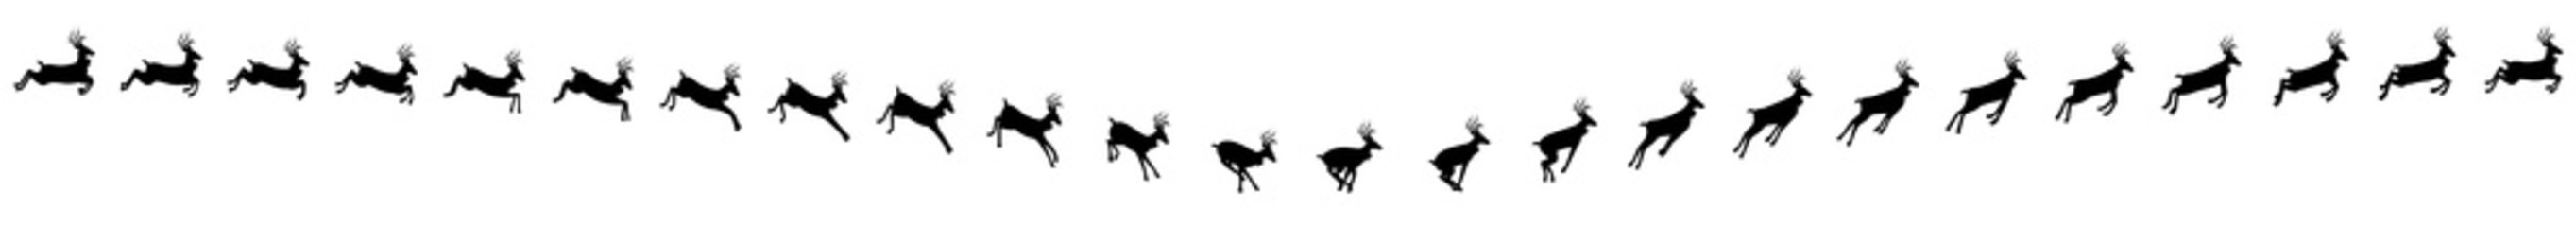 2727x240 Deer Running And Jumping Animation Sprite Sheets, Reindeer, Deer